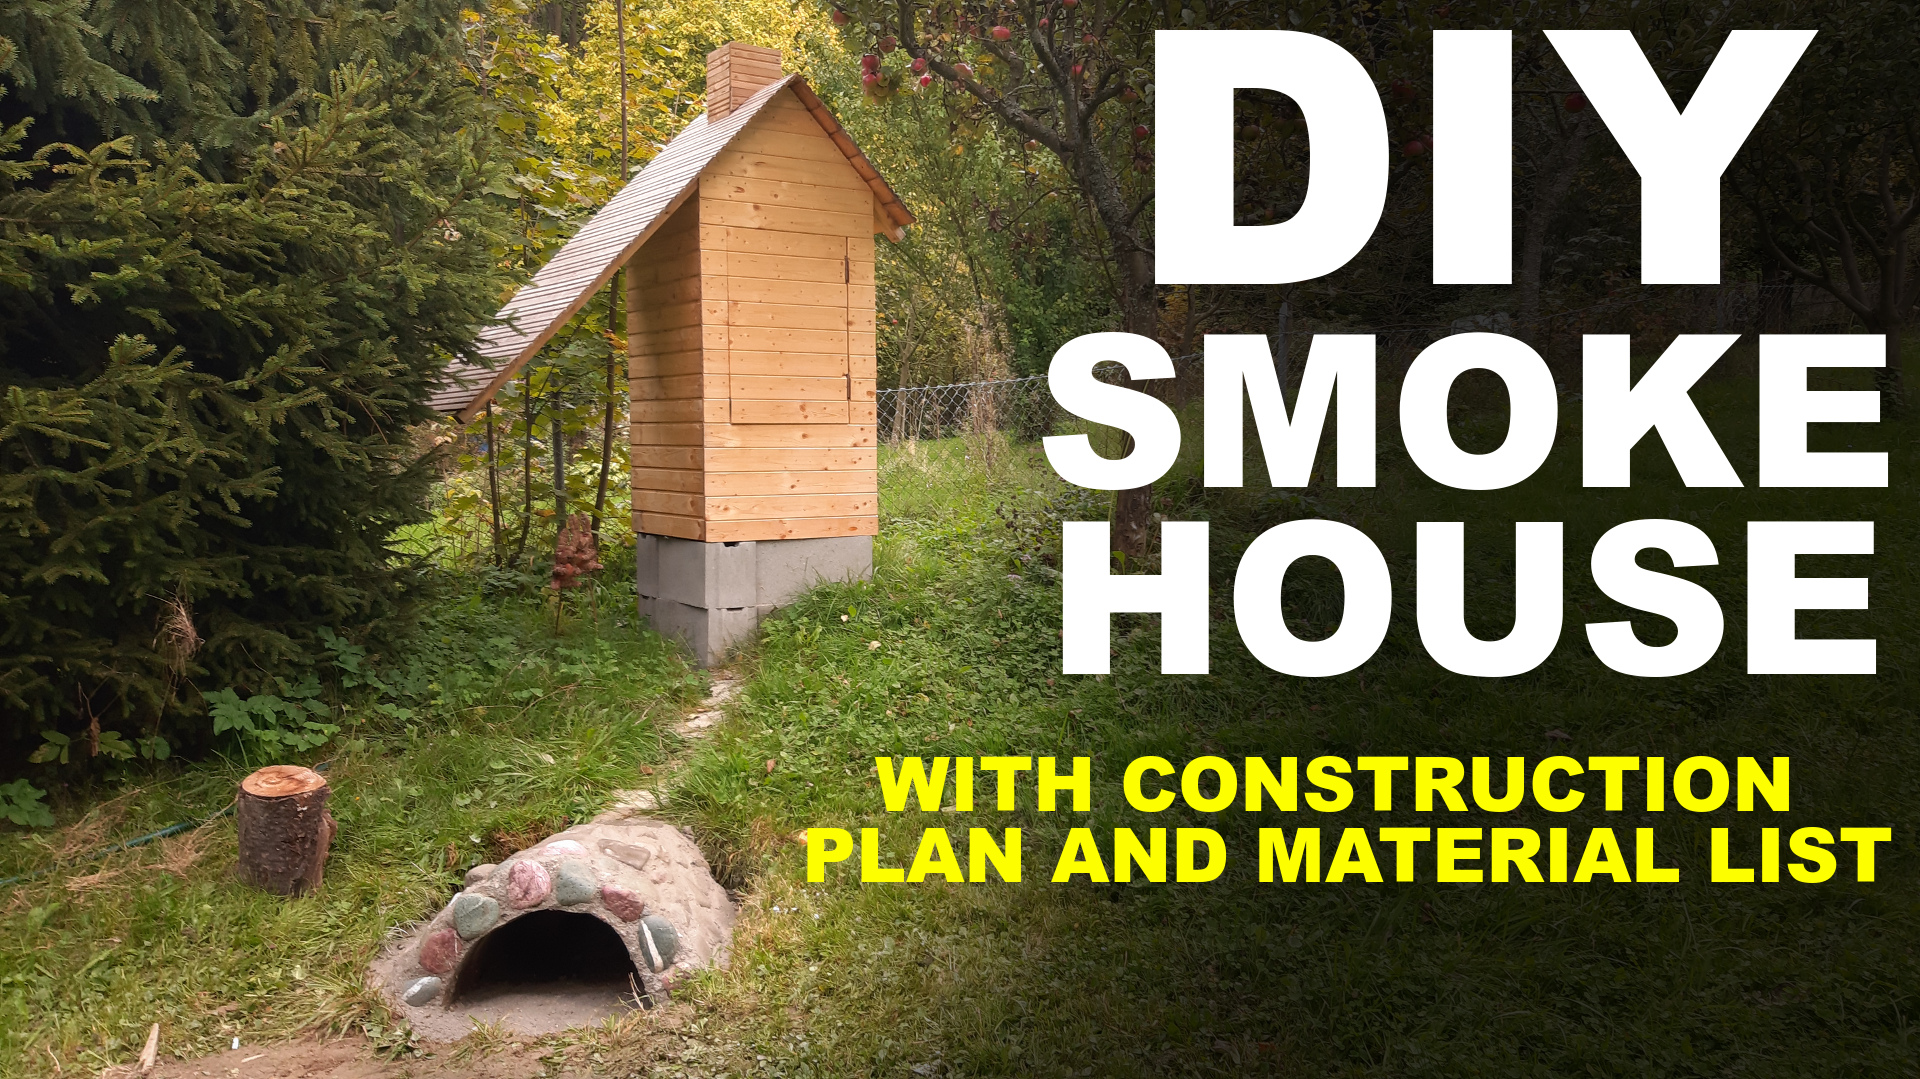 How To Build A Smokehouse - DIY smokehouse with Construction Plan and Material List